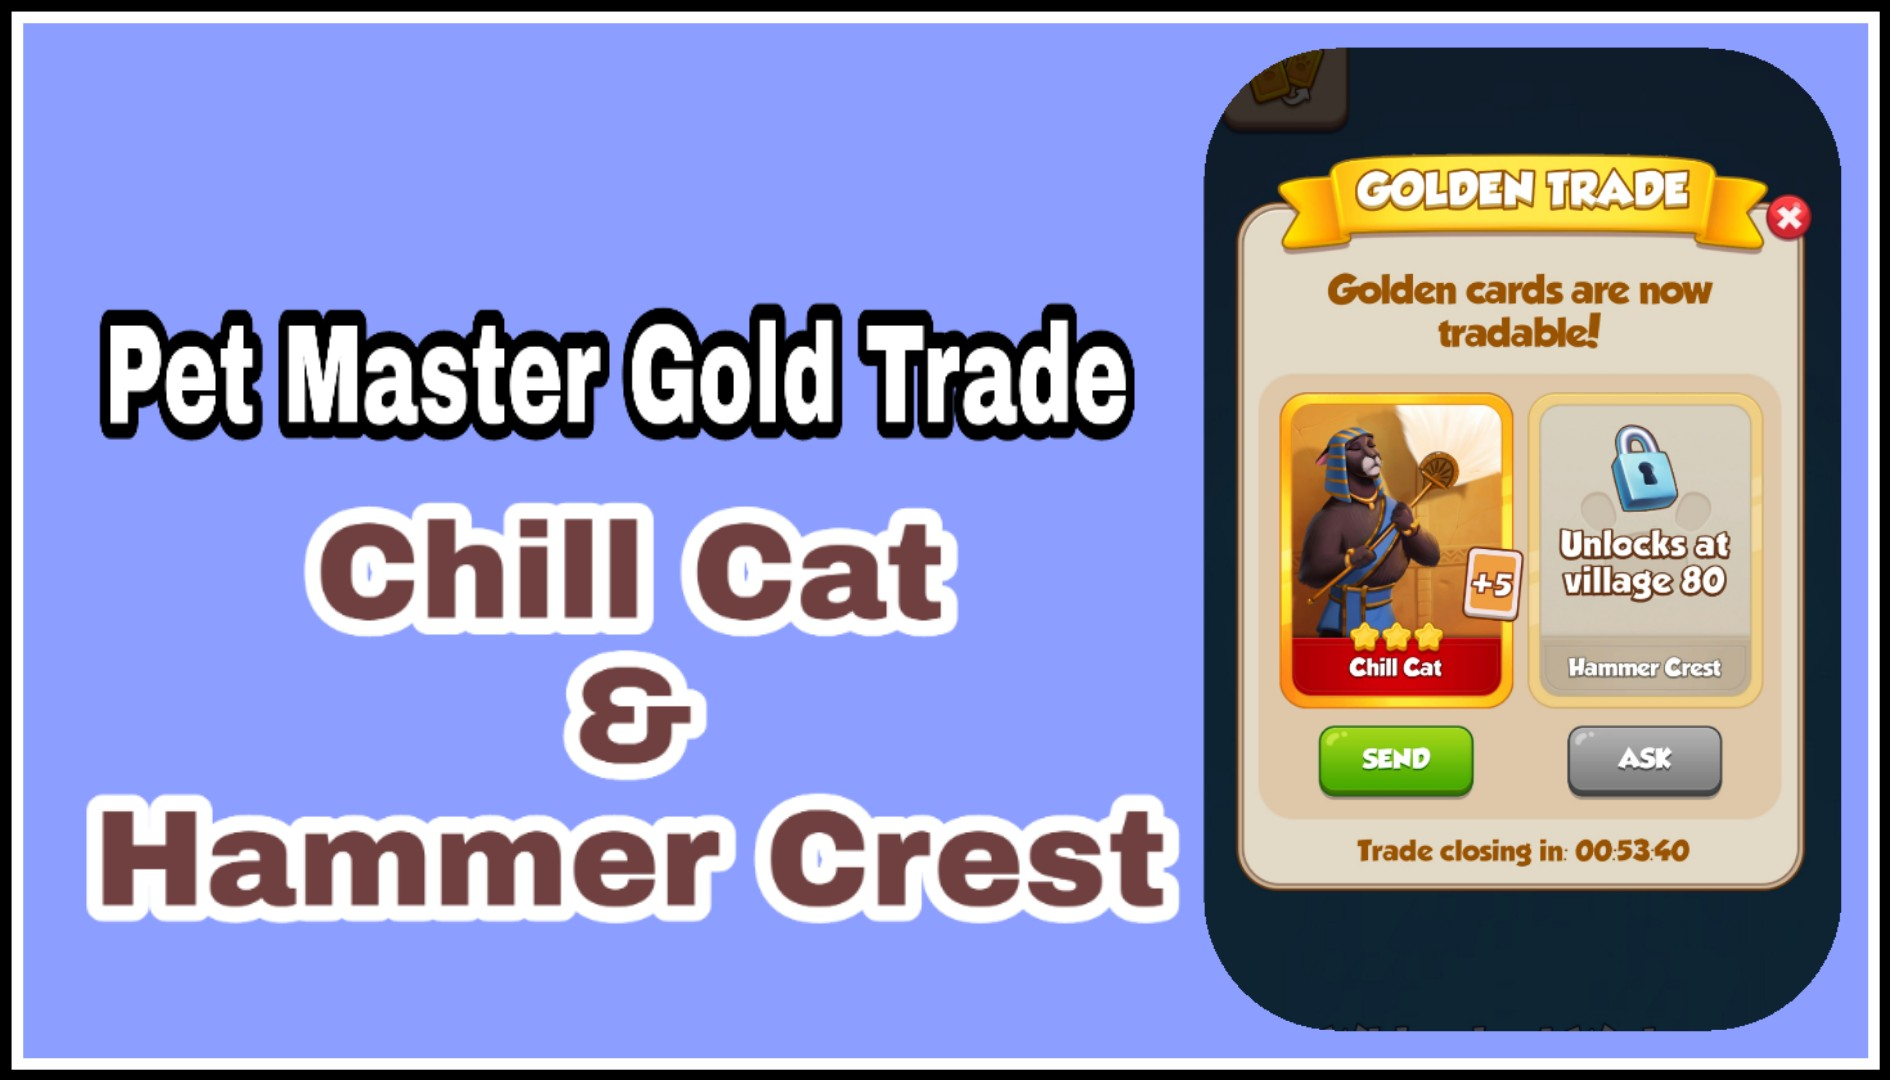 Chill Cat & Hammer Crest Gold Card Trade in Pet Master